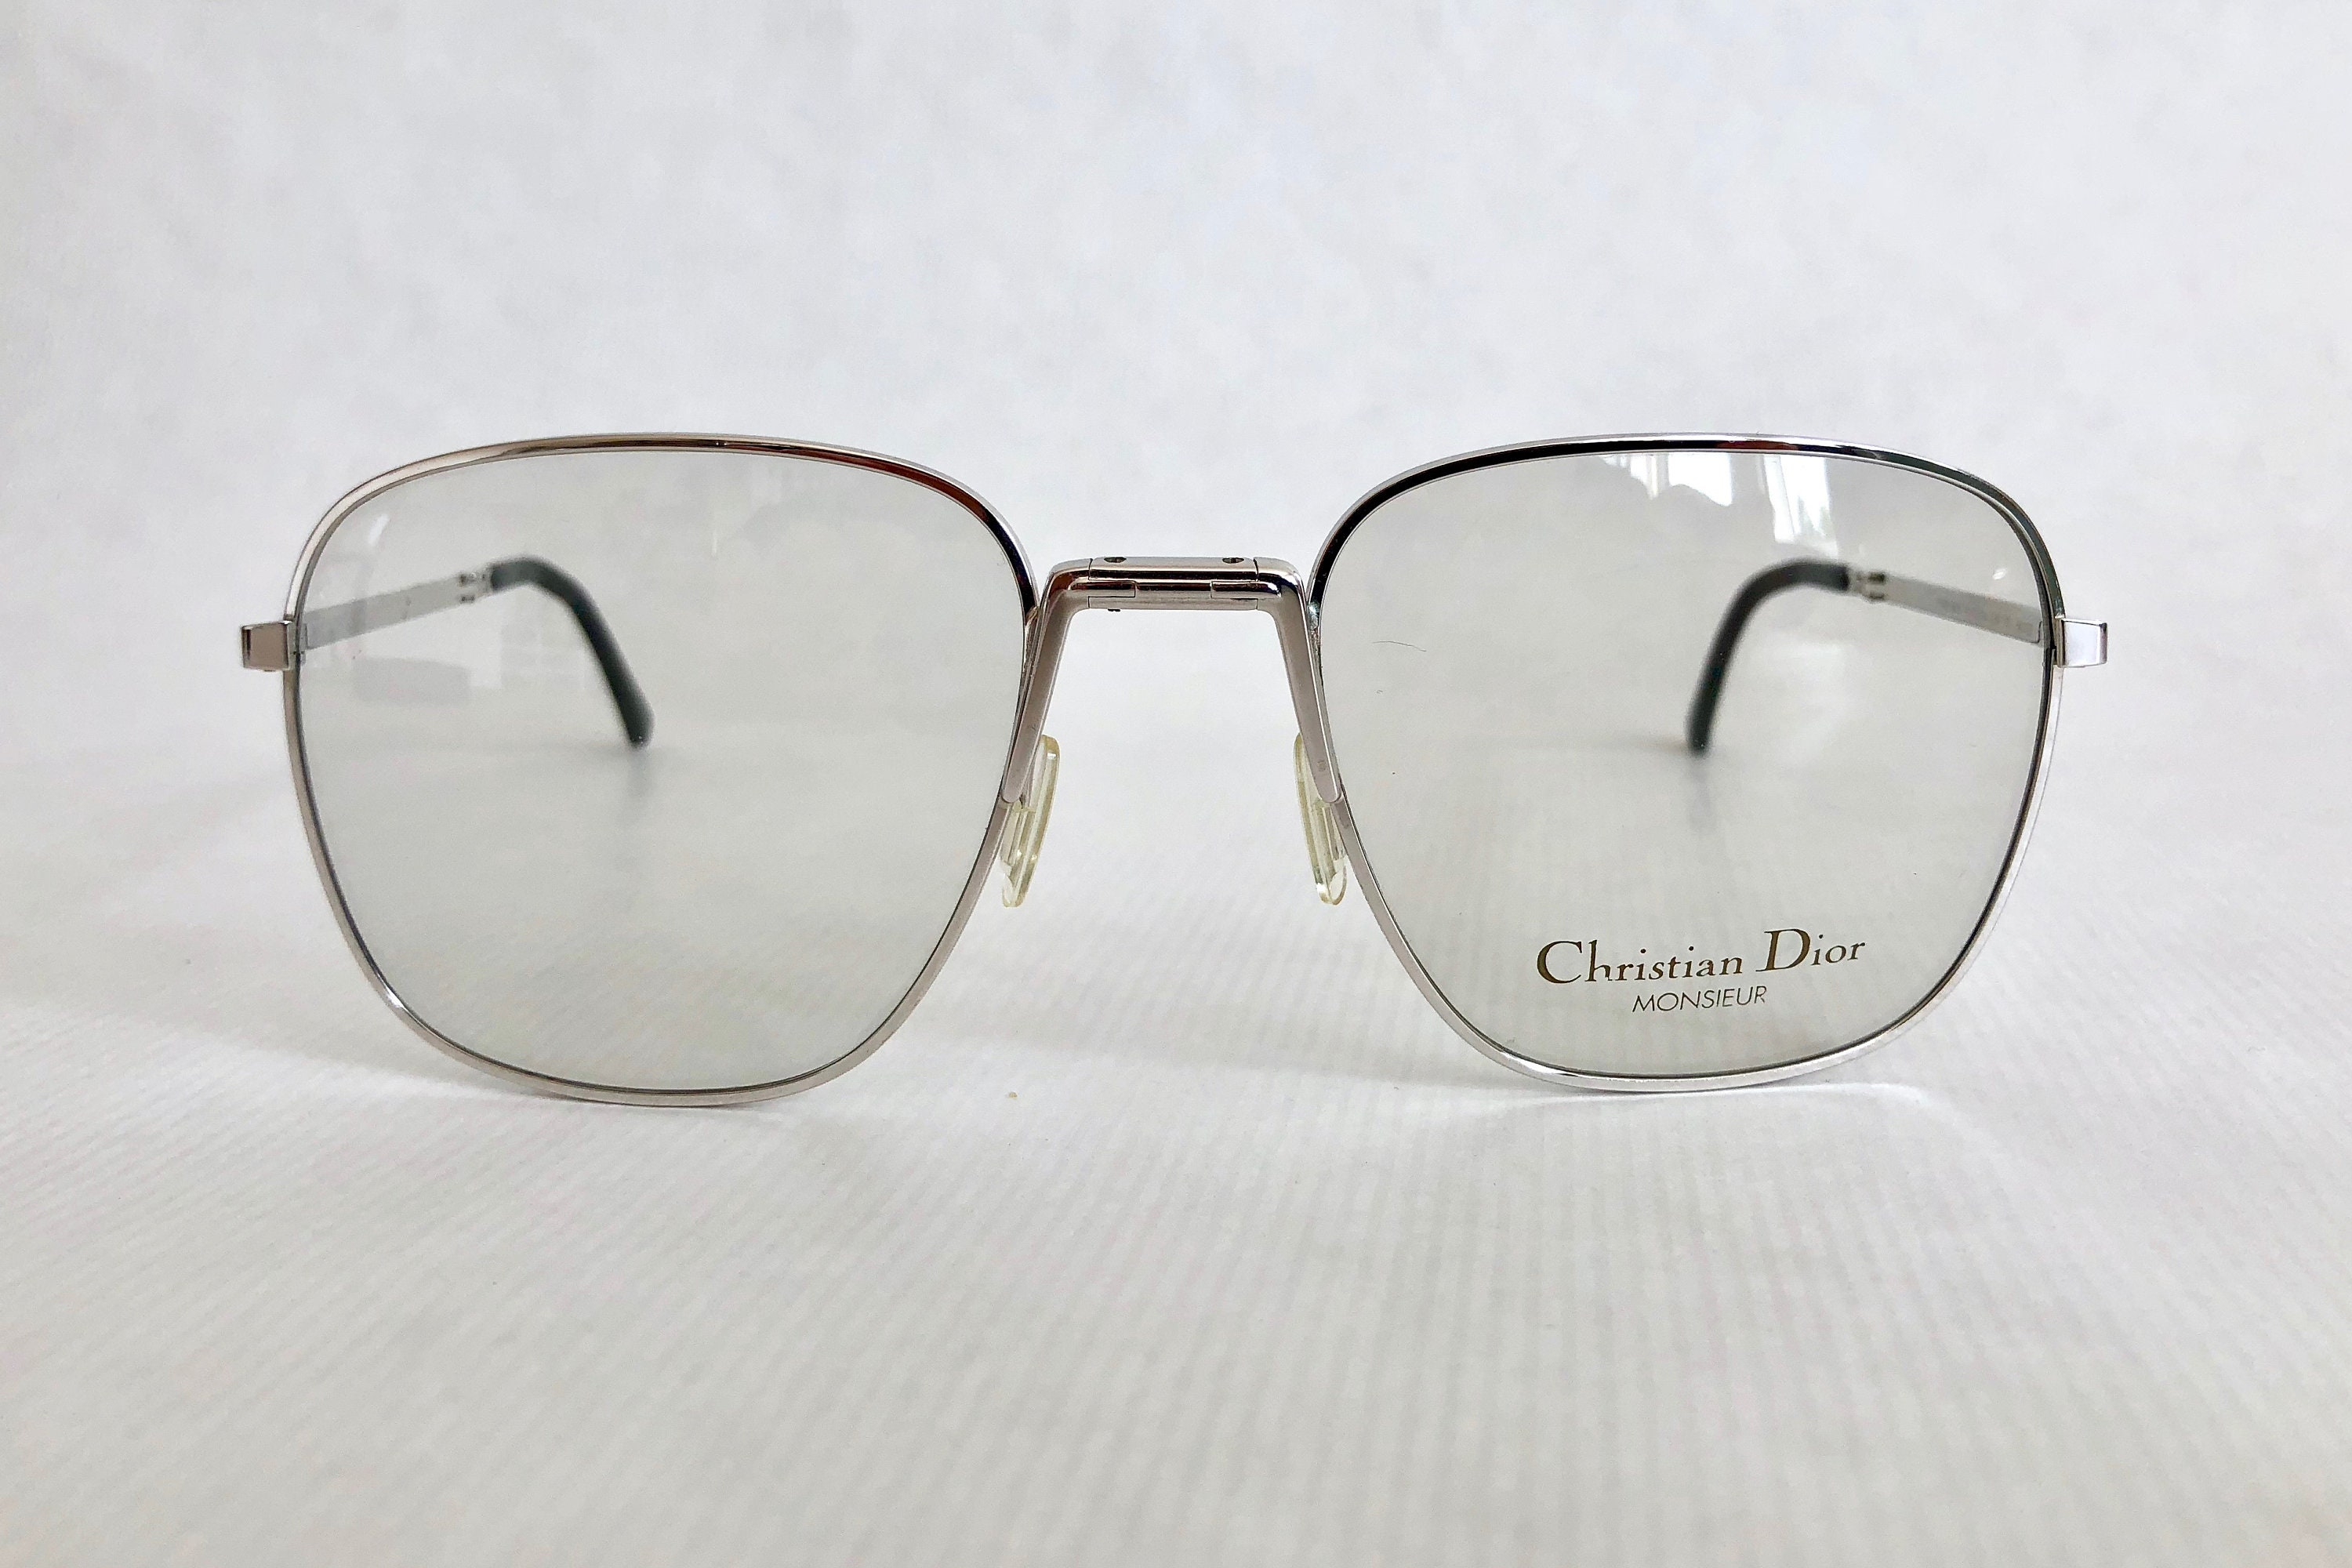 6aaea23614b Folding Christian Dior Monsieur 2287 Vintage Glasses New Old Stock with  Original Case